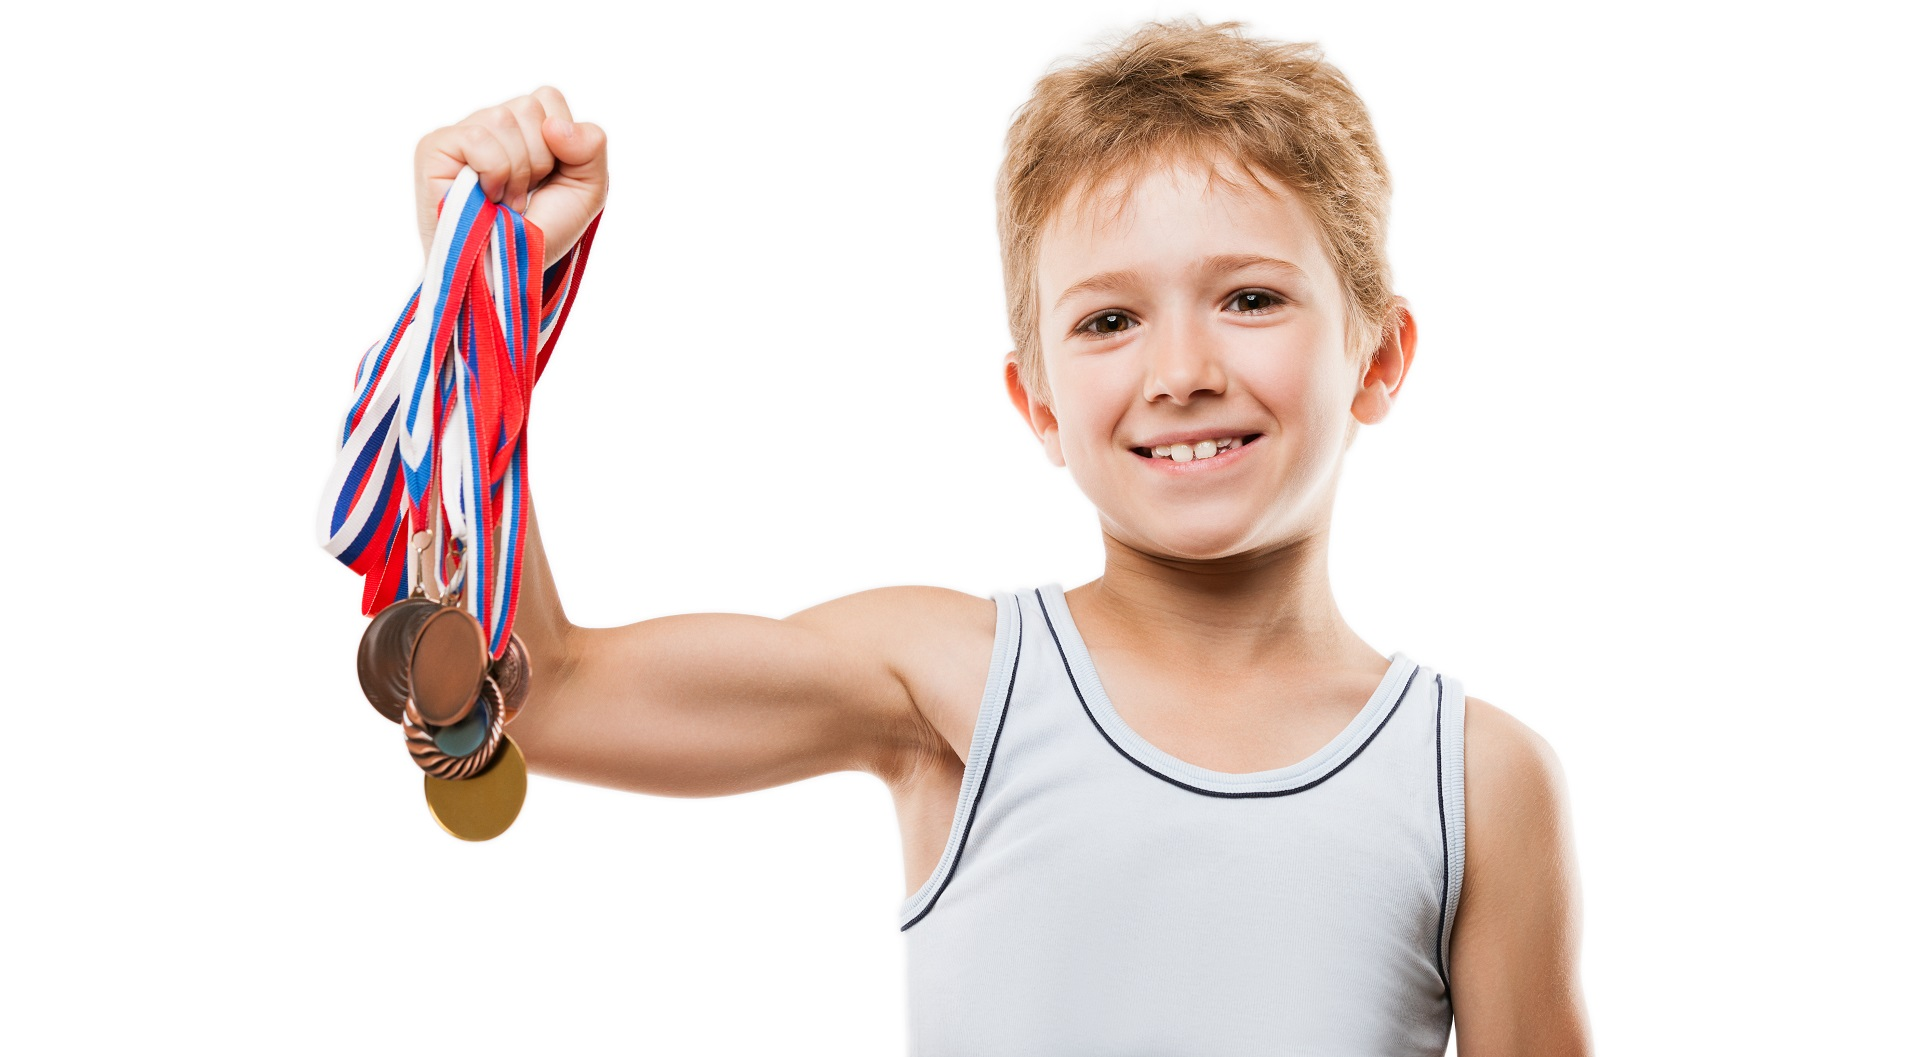 Custom Medals for School Events